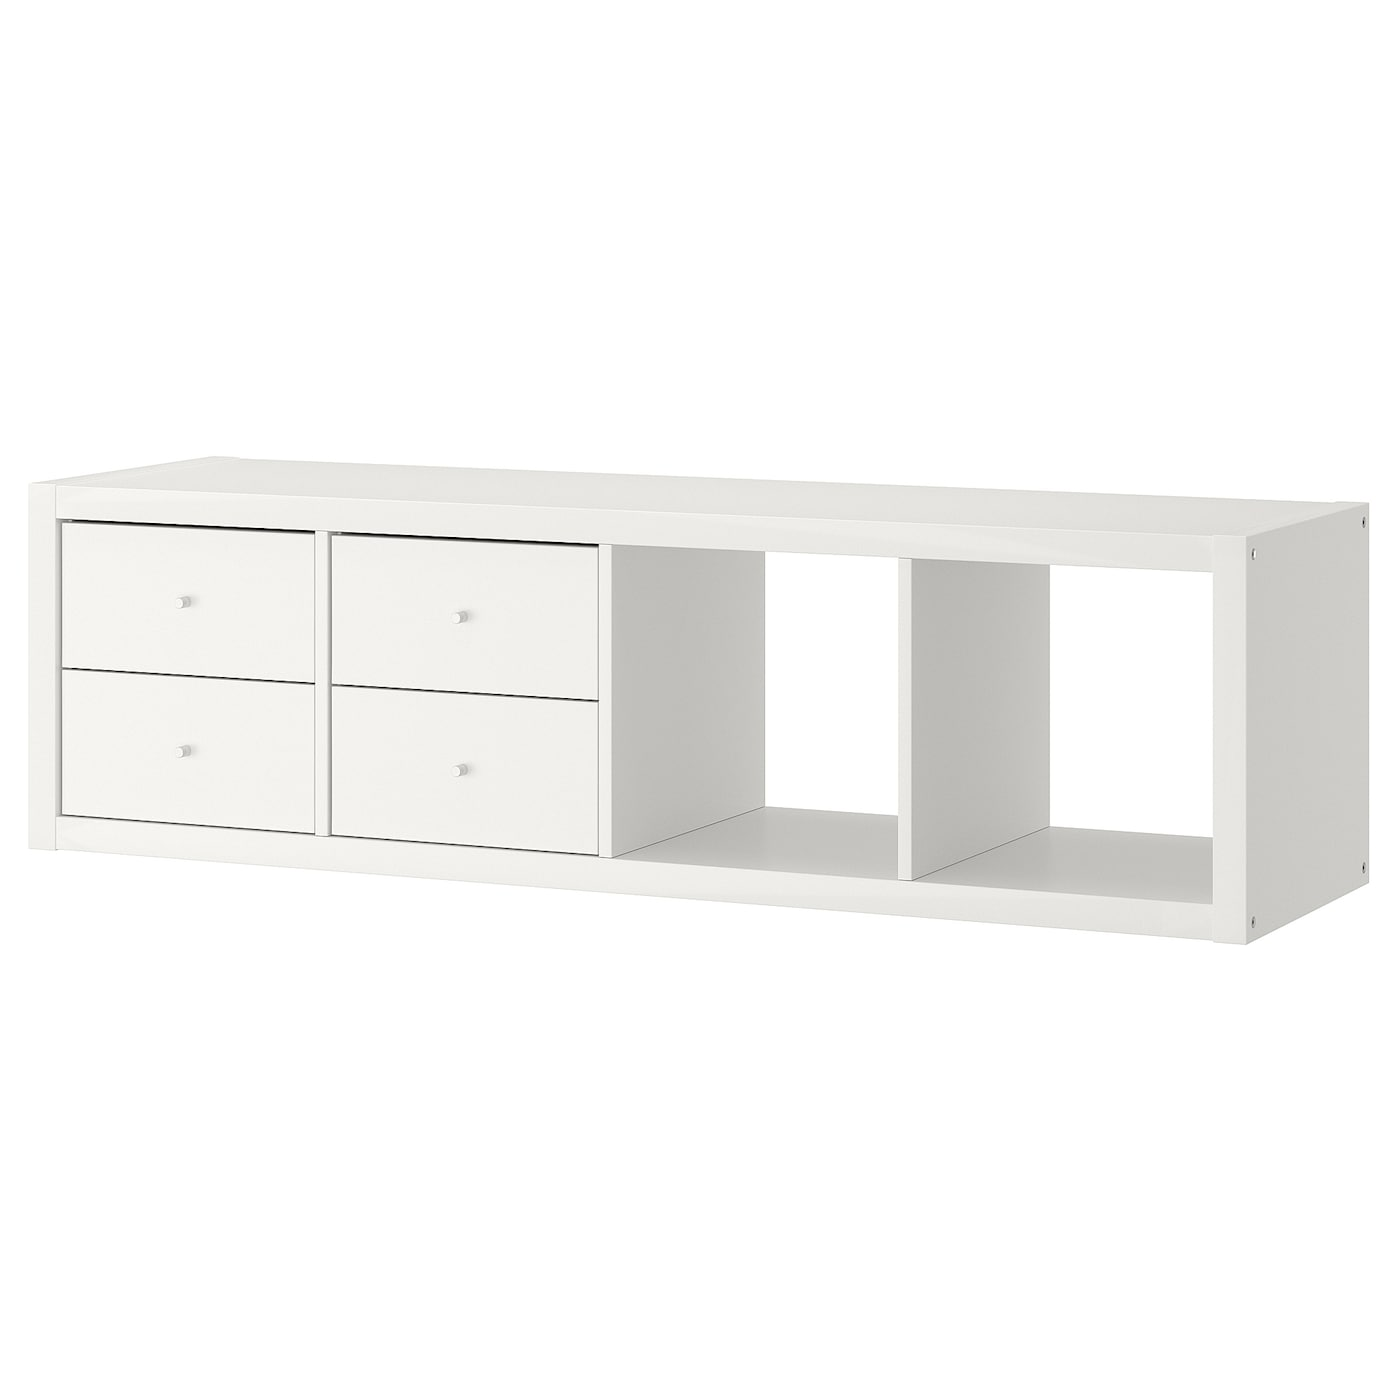 Ikea KALLAX Shelf unit with 2 inserts, white, 16 1/2x57 7/8